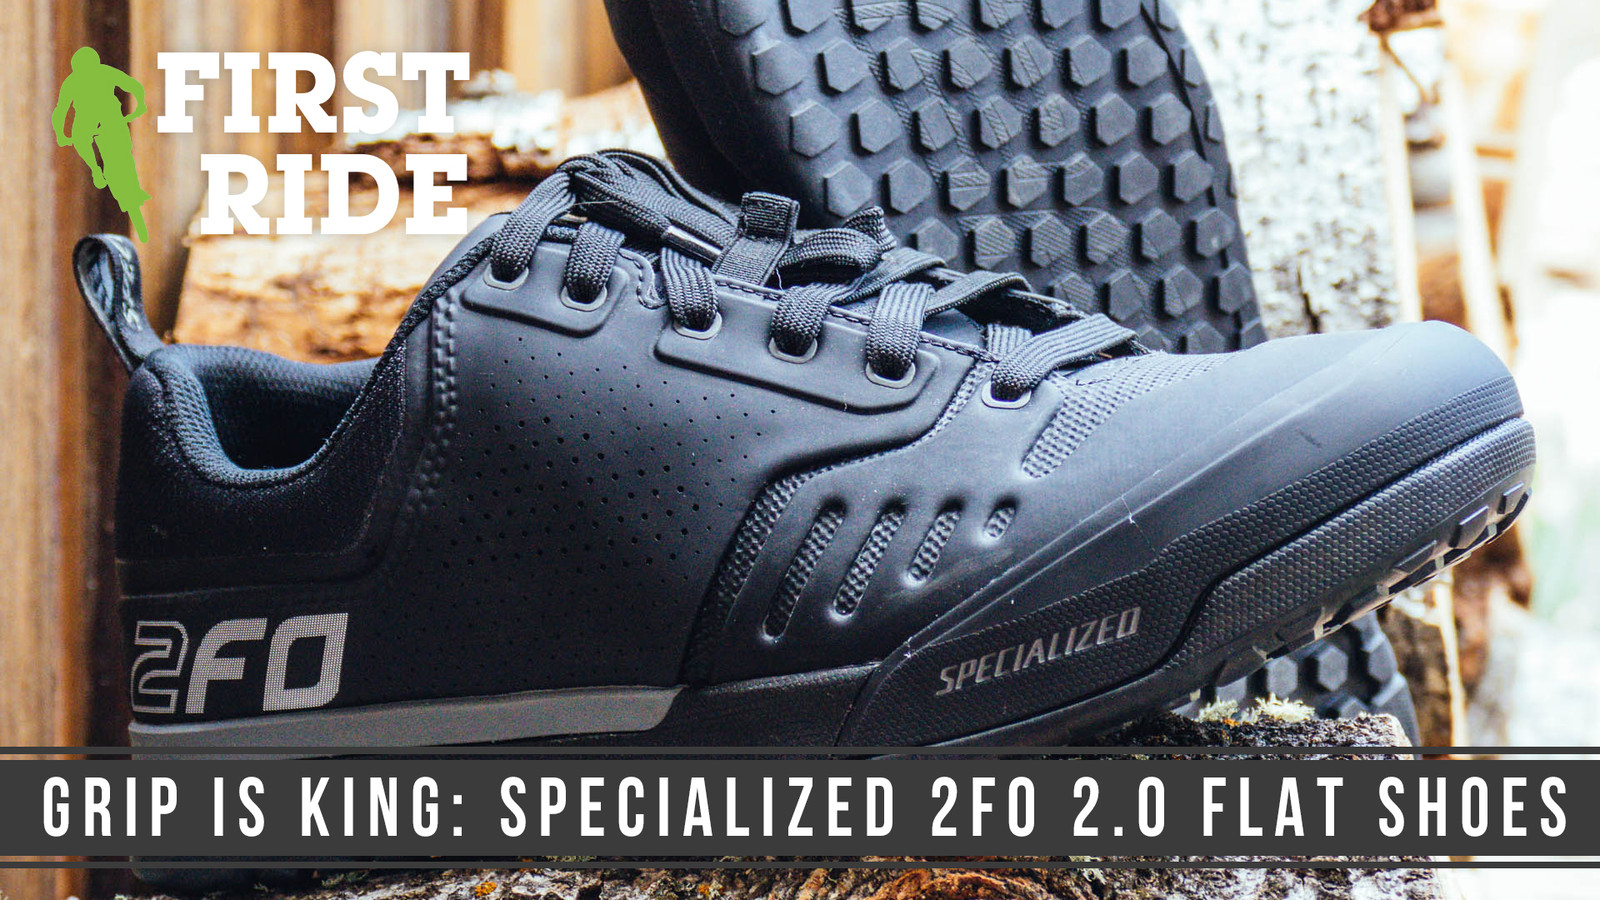 badc07fb47be80 Specialized 2FO Flat 2.0 Shoes - Reviews, Comparisons, Specs ...